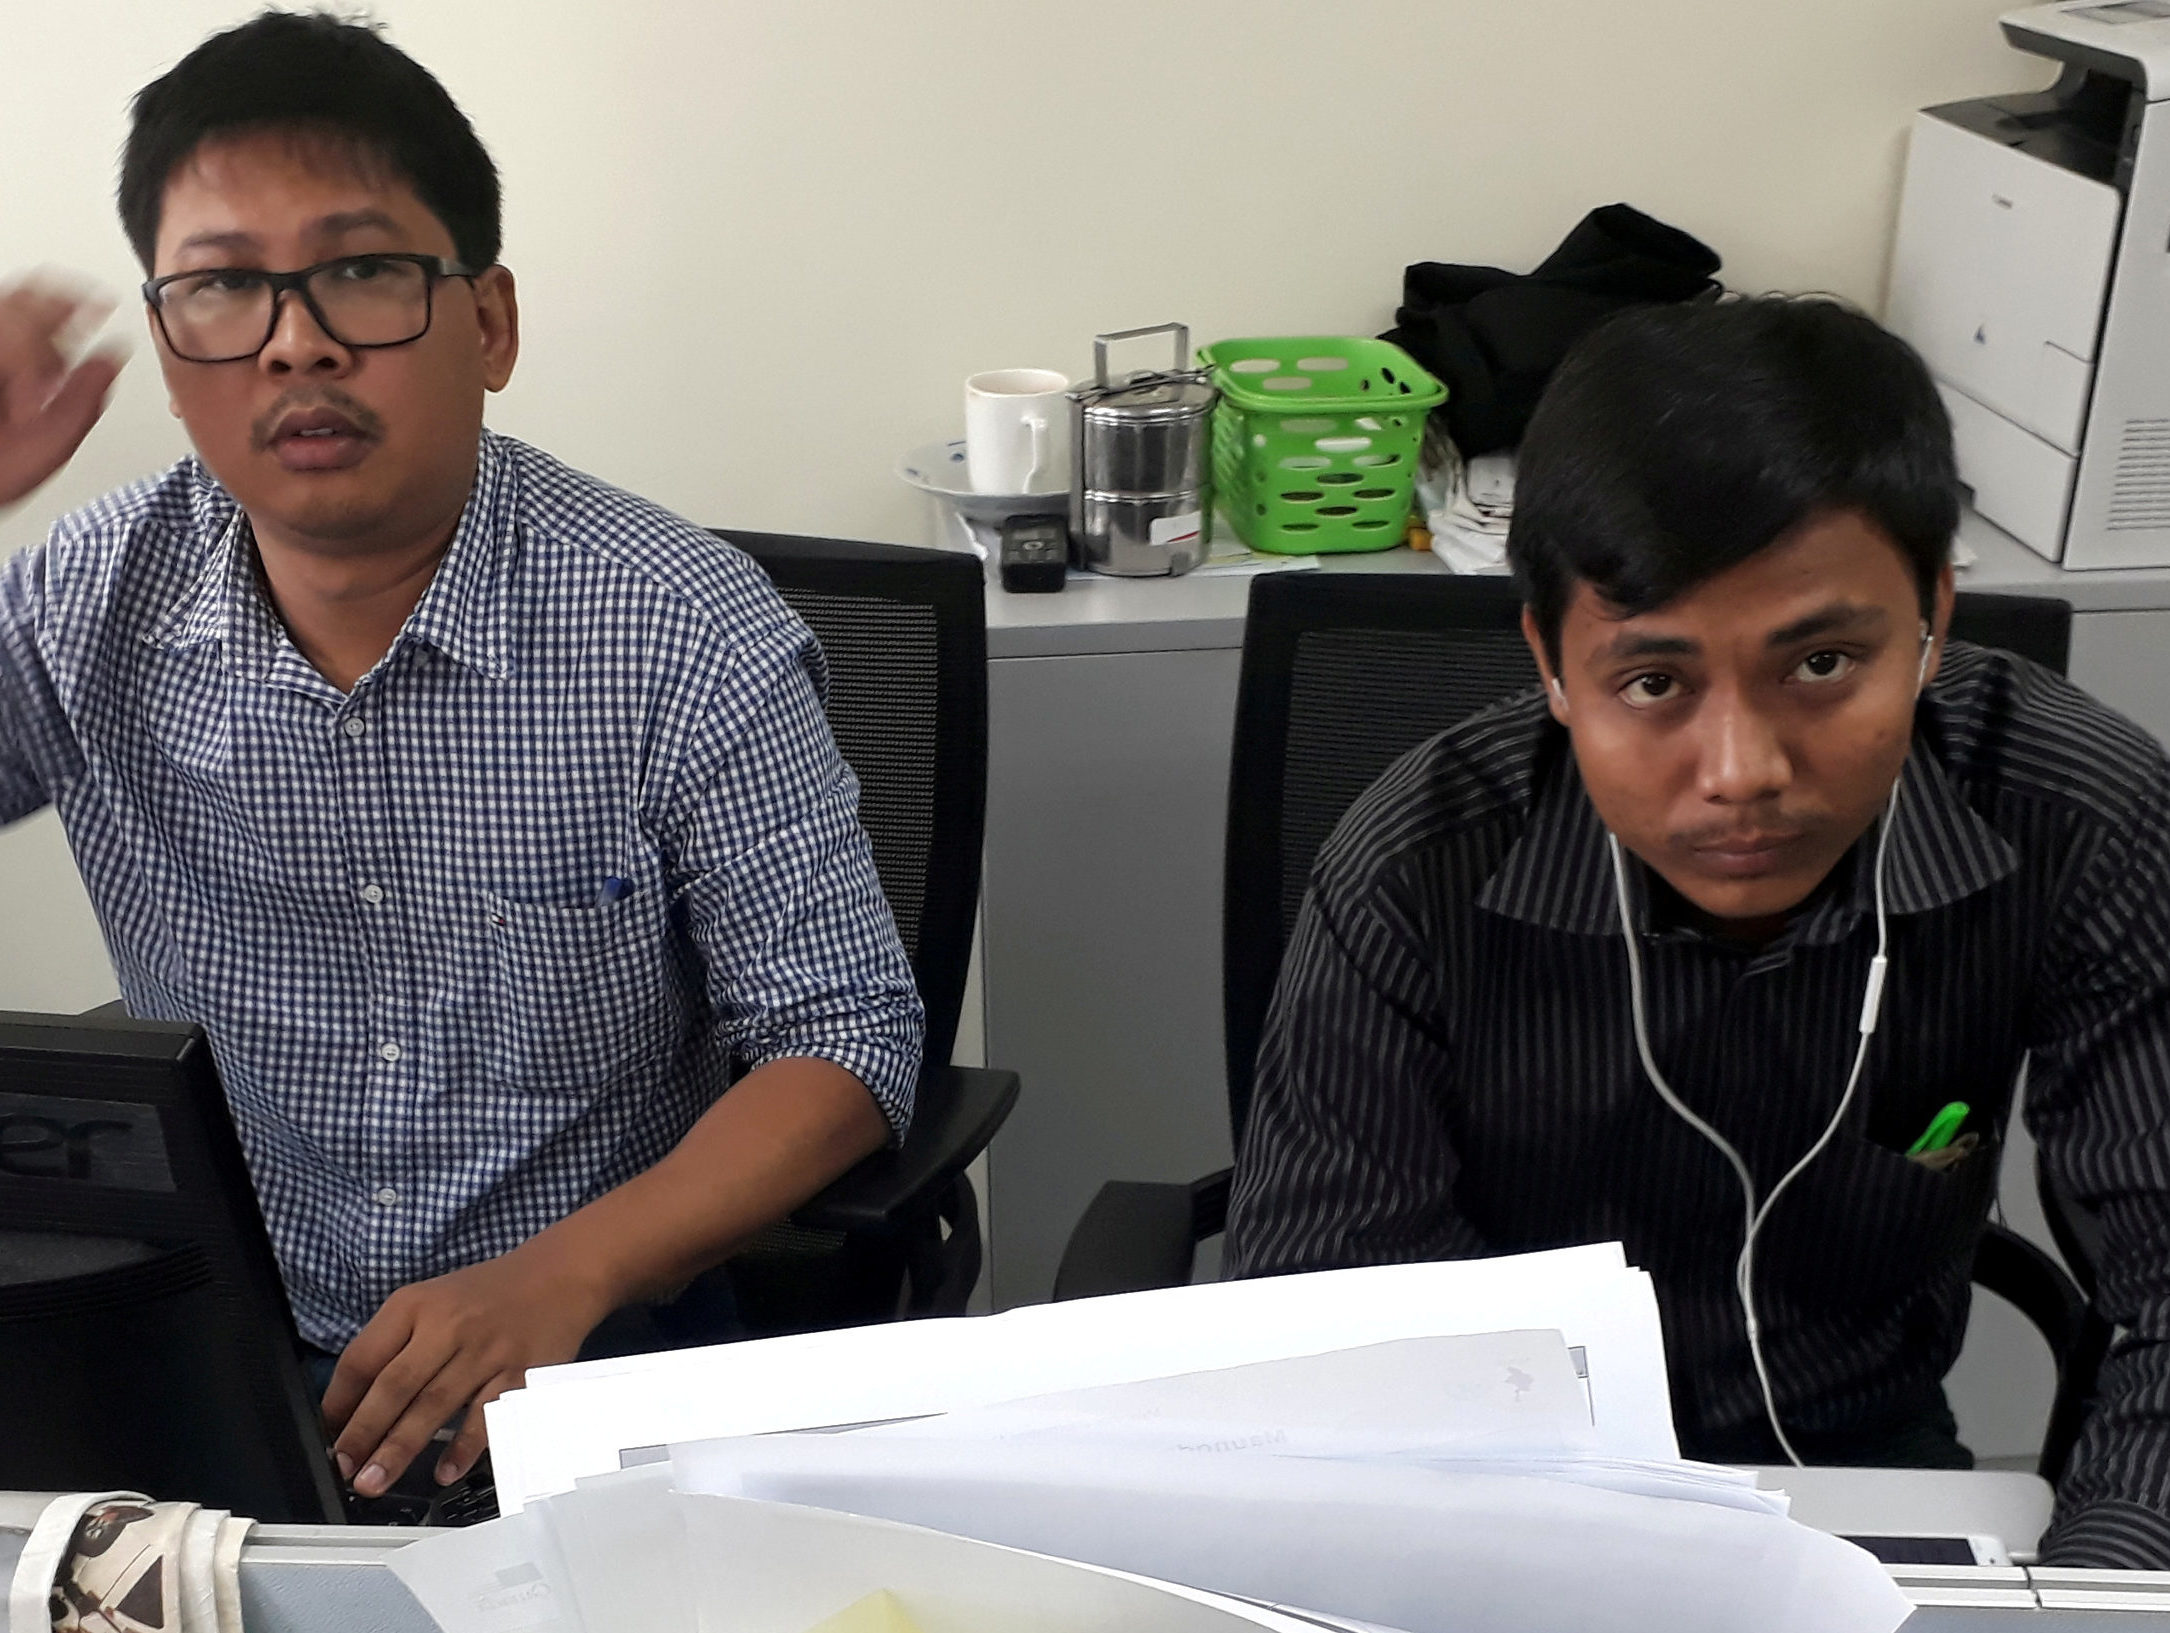 Reuters statement on Wa Lone and Kyaw Soe Oo